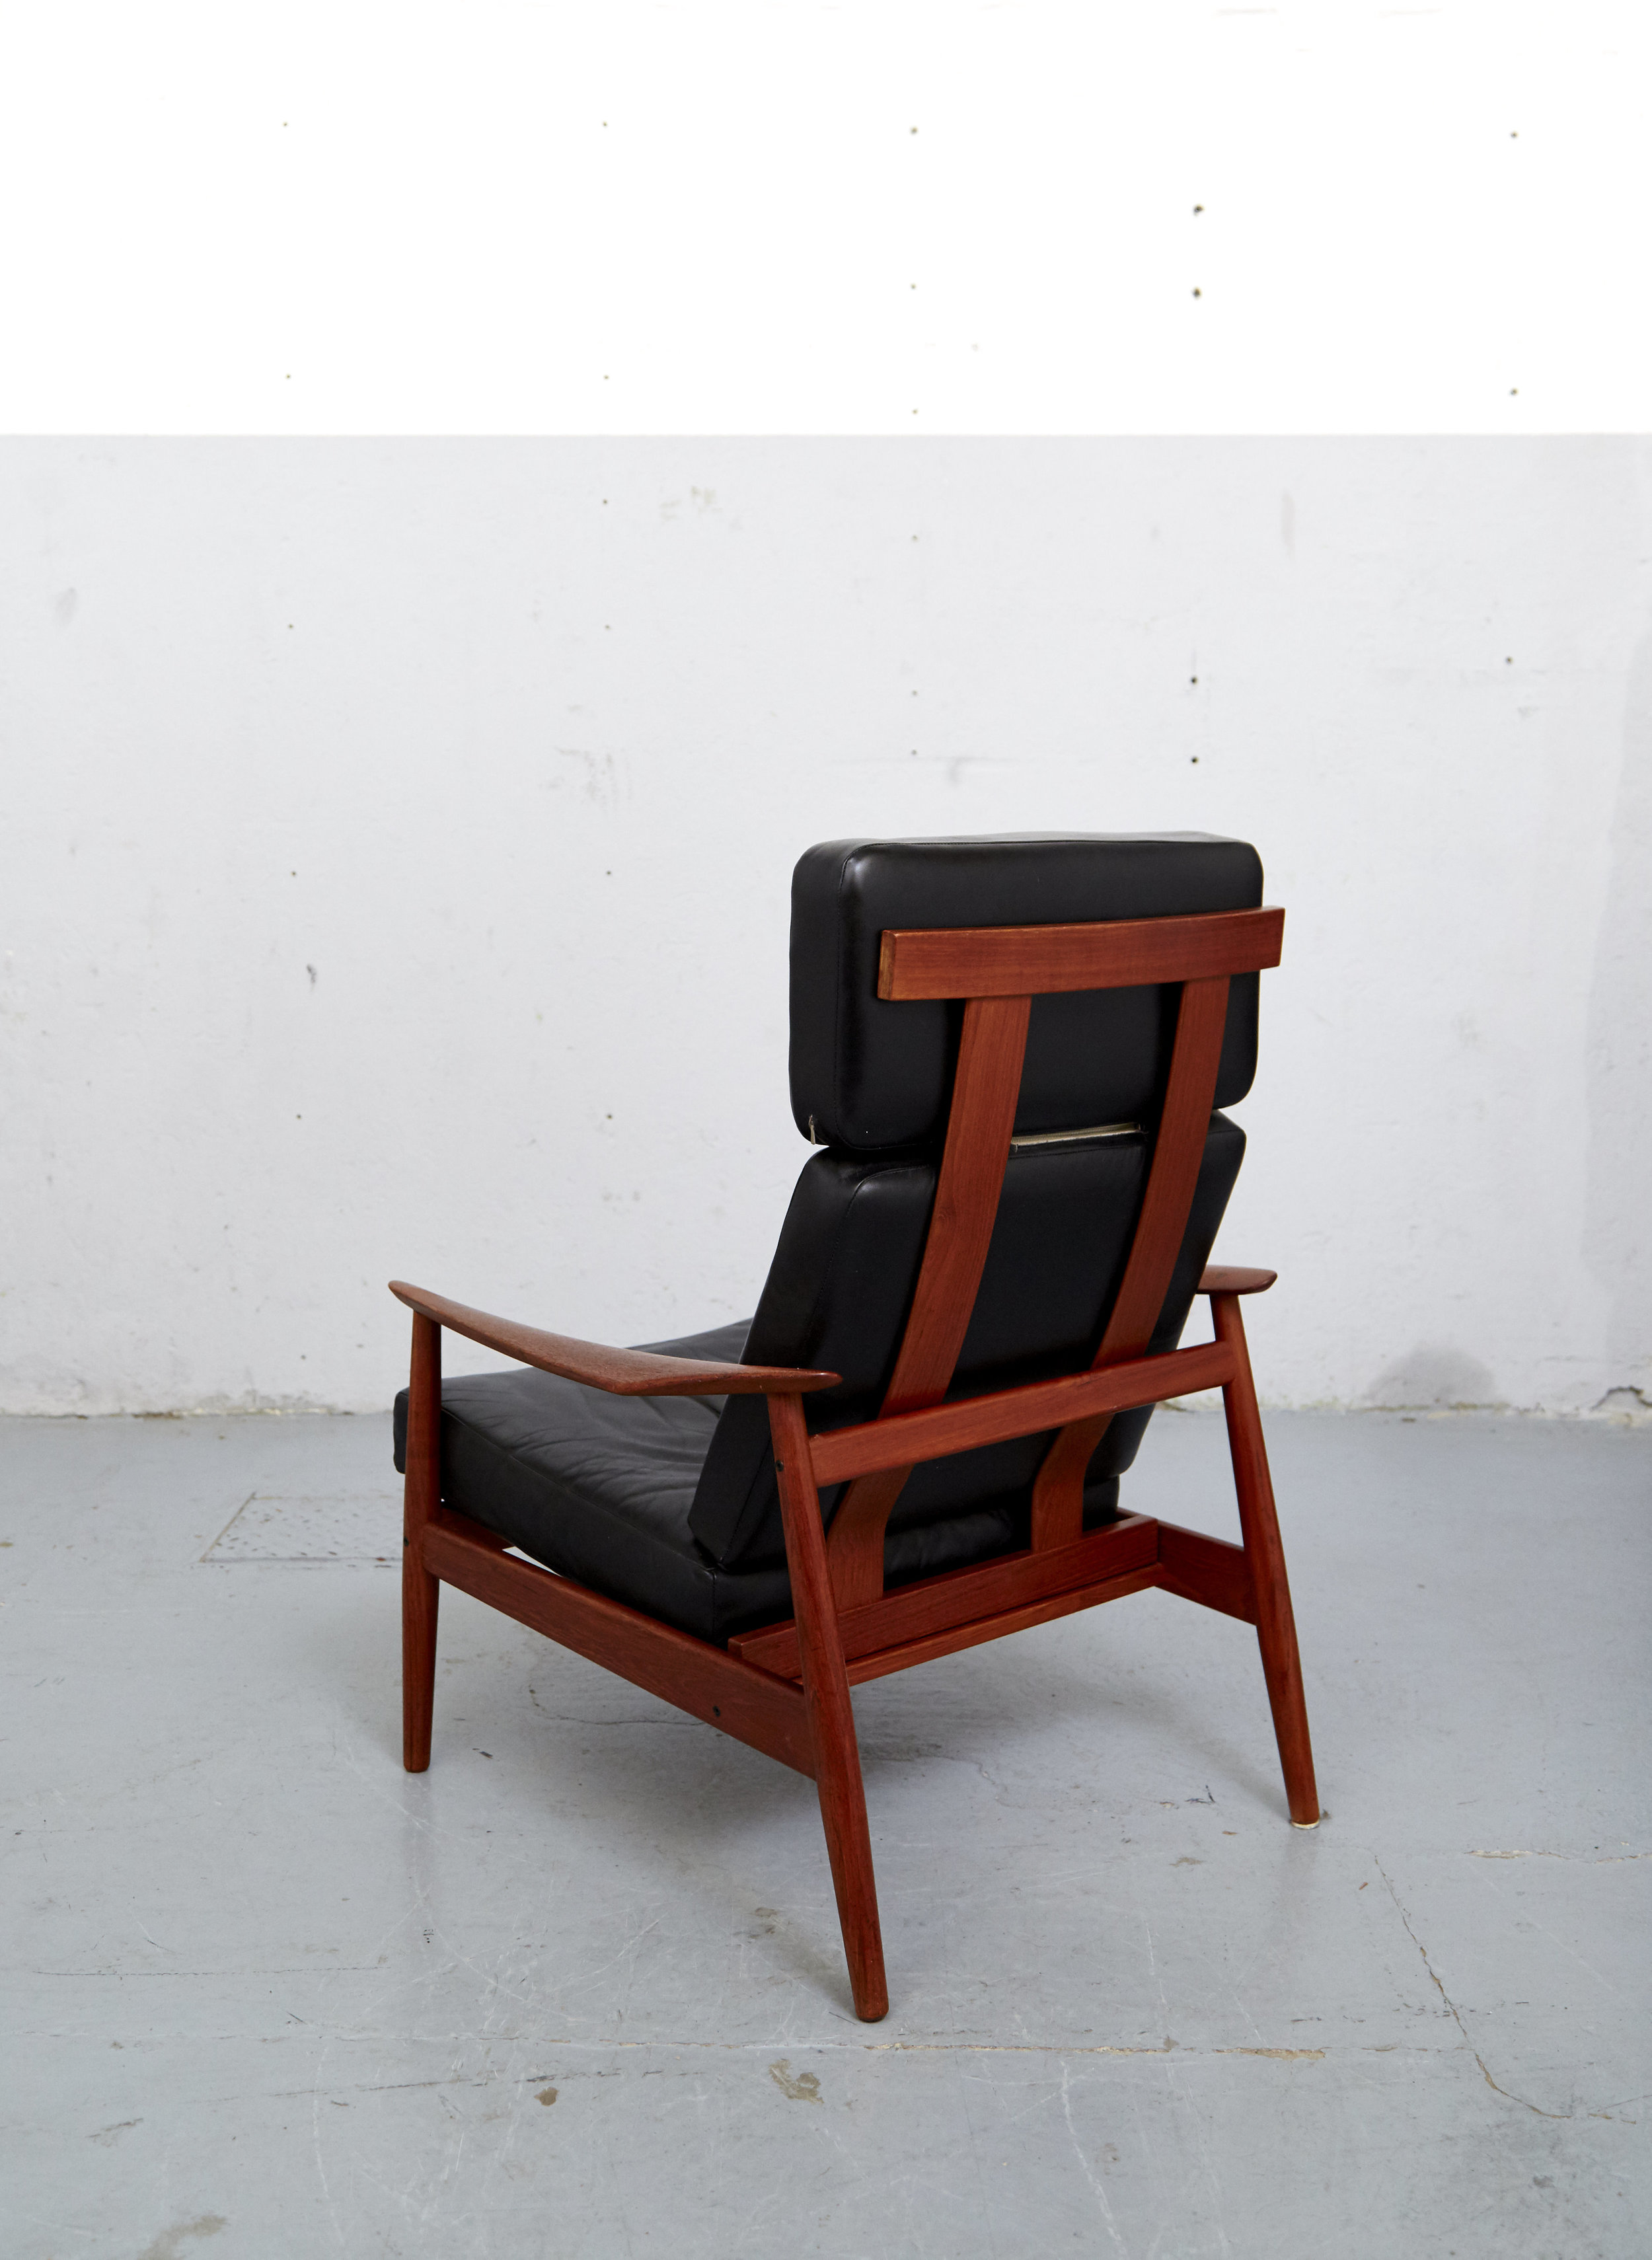 Arne Vodder Sessel Sold Arne Vodder Lounge Chair Sessel Fd 164 For France Søn